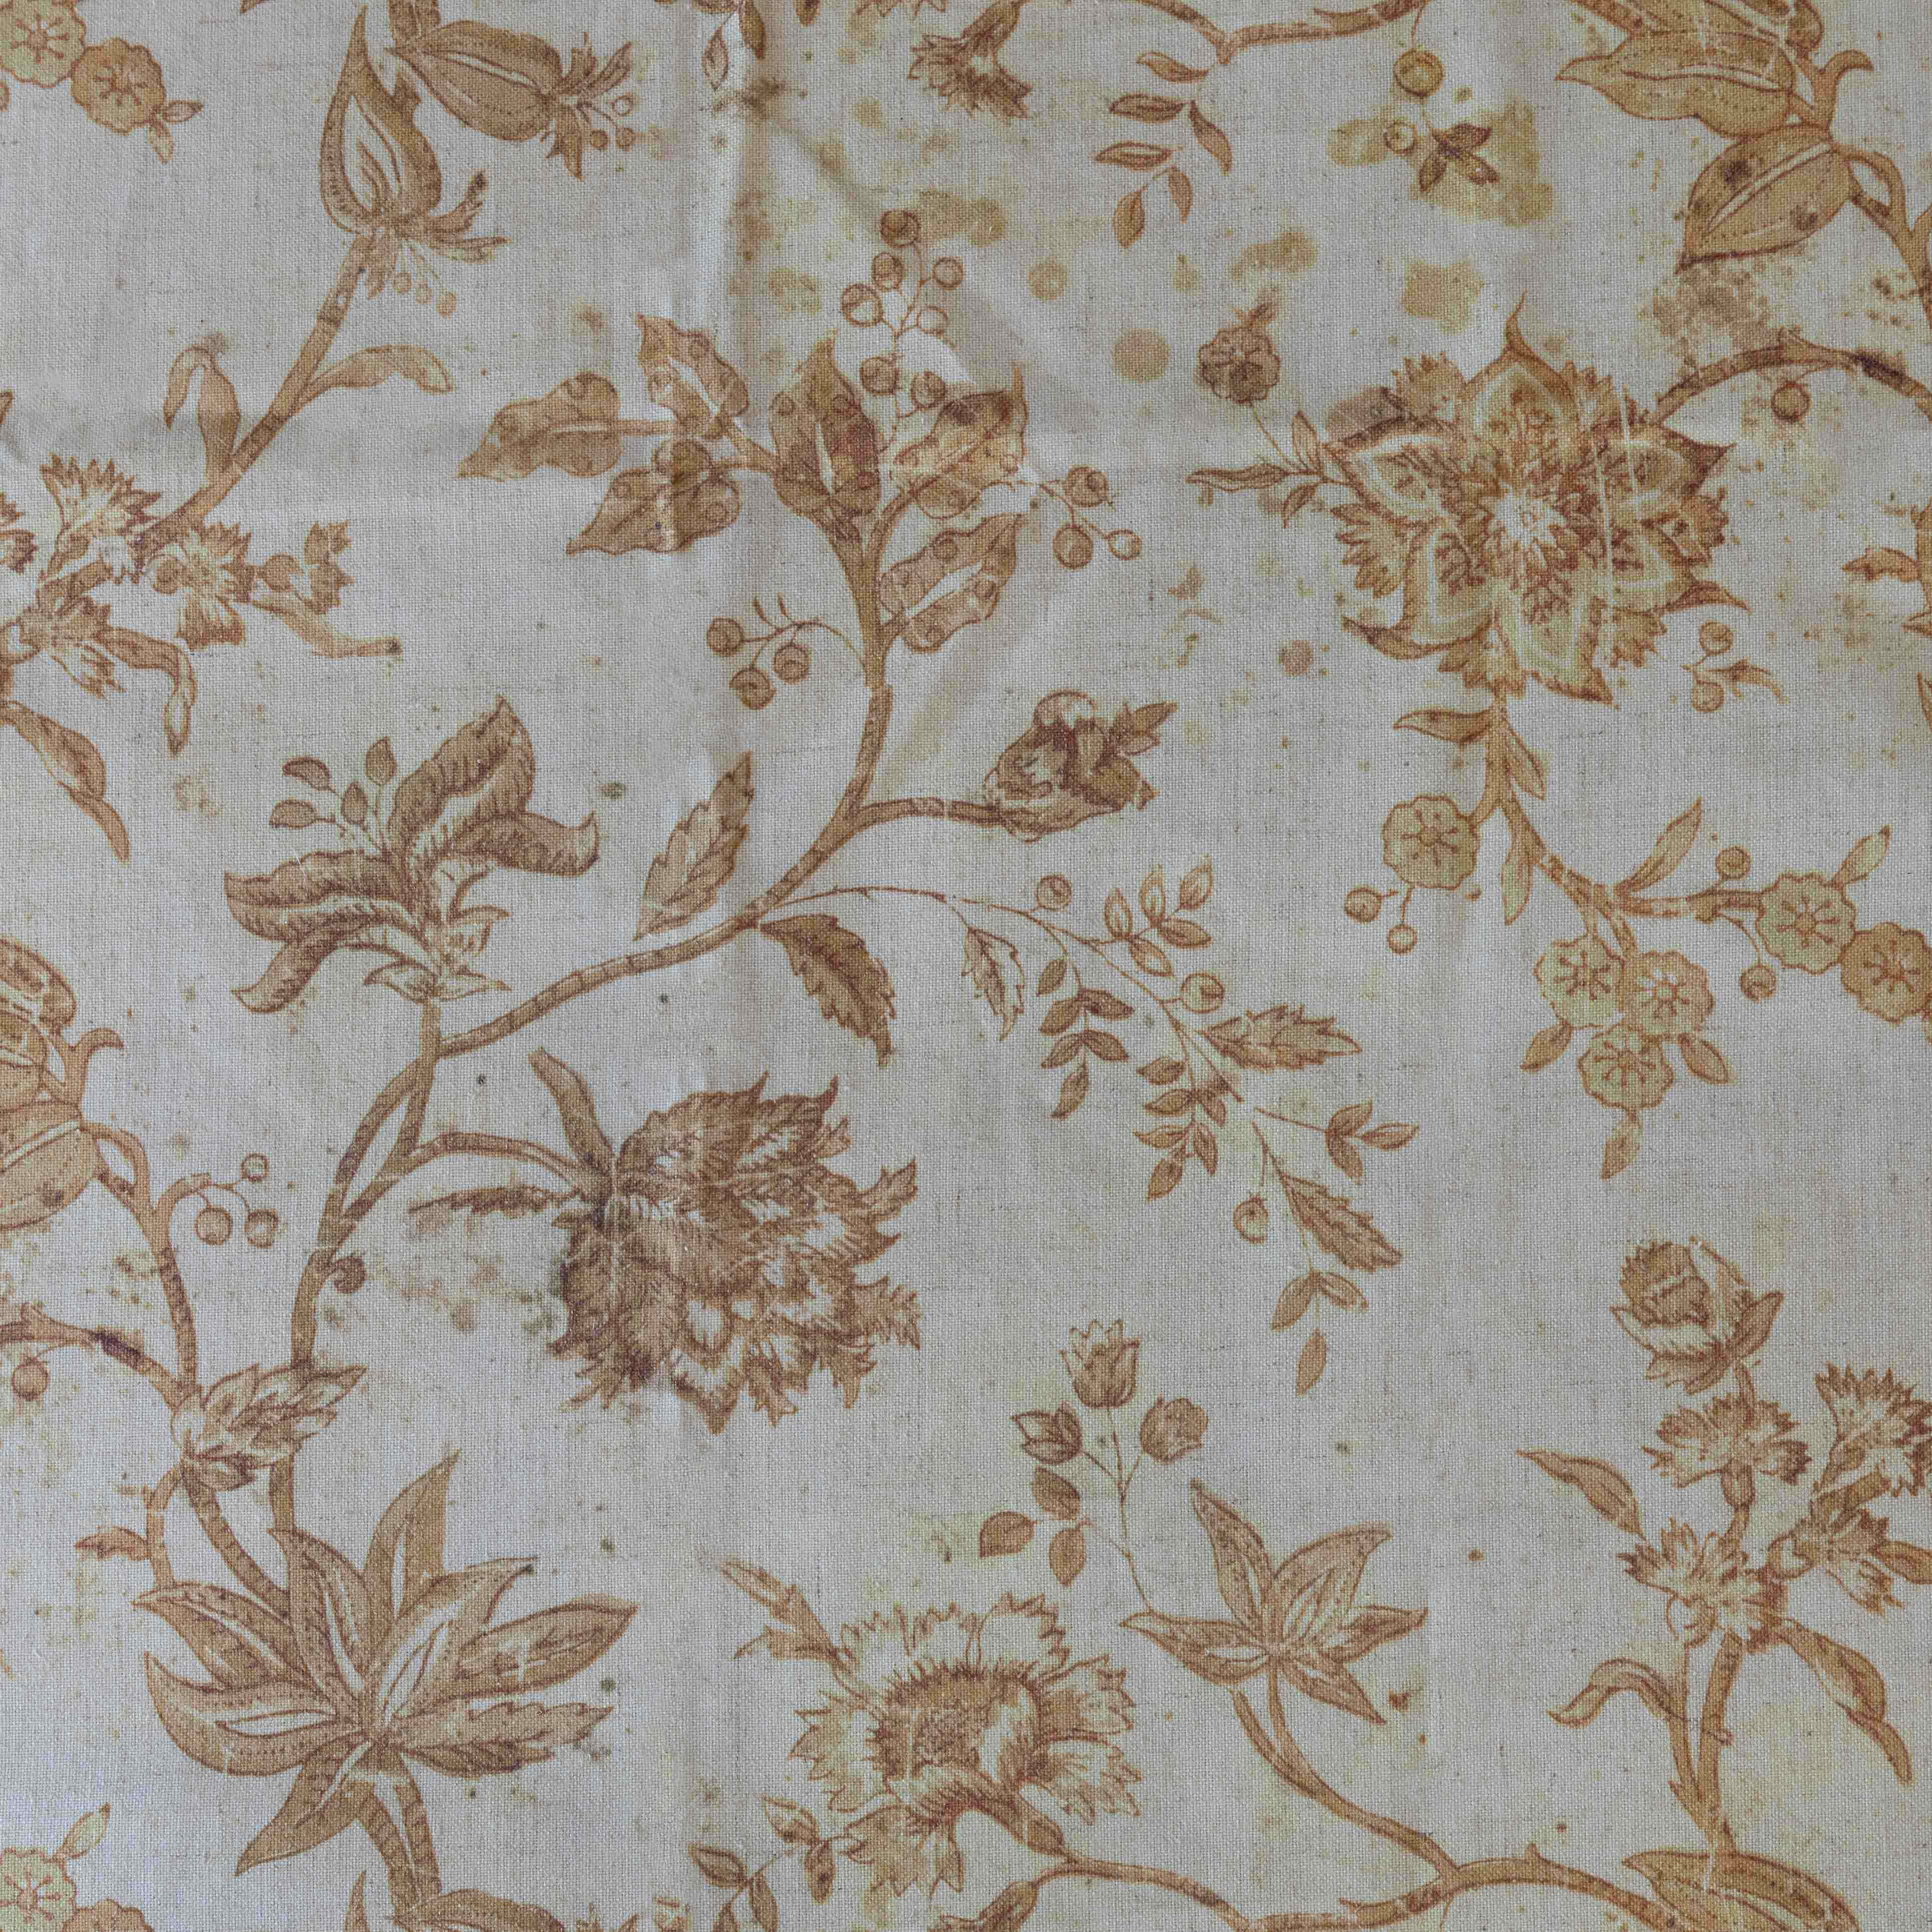 Chinoiserie Floral Fabric